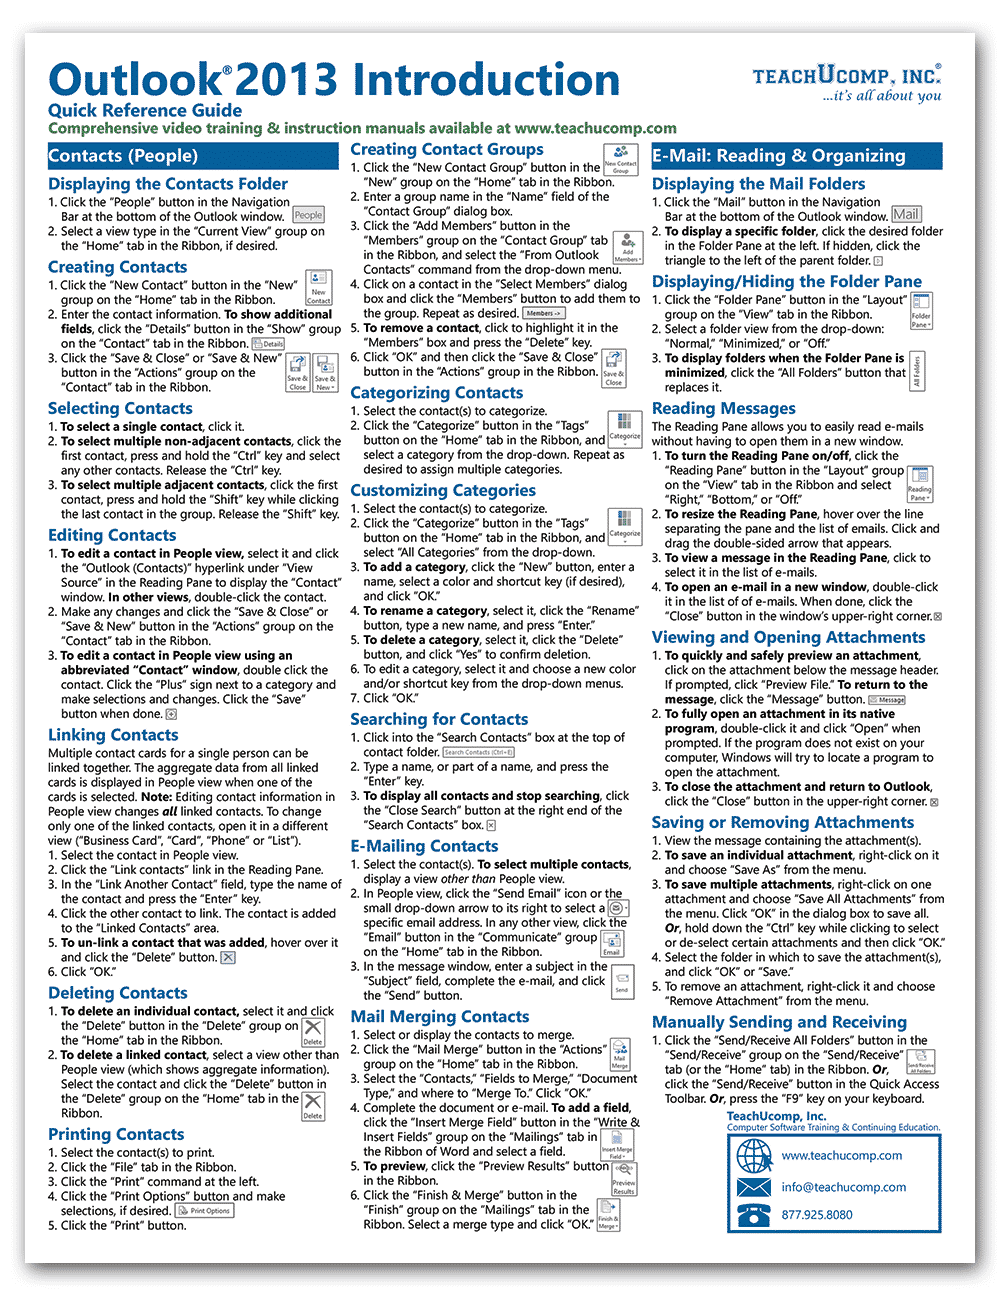 Microsoft Outlook 2013 Introductory Quick Reference Guide ...